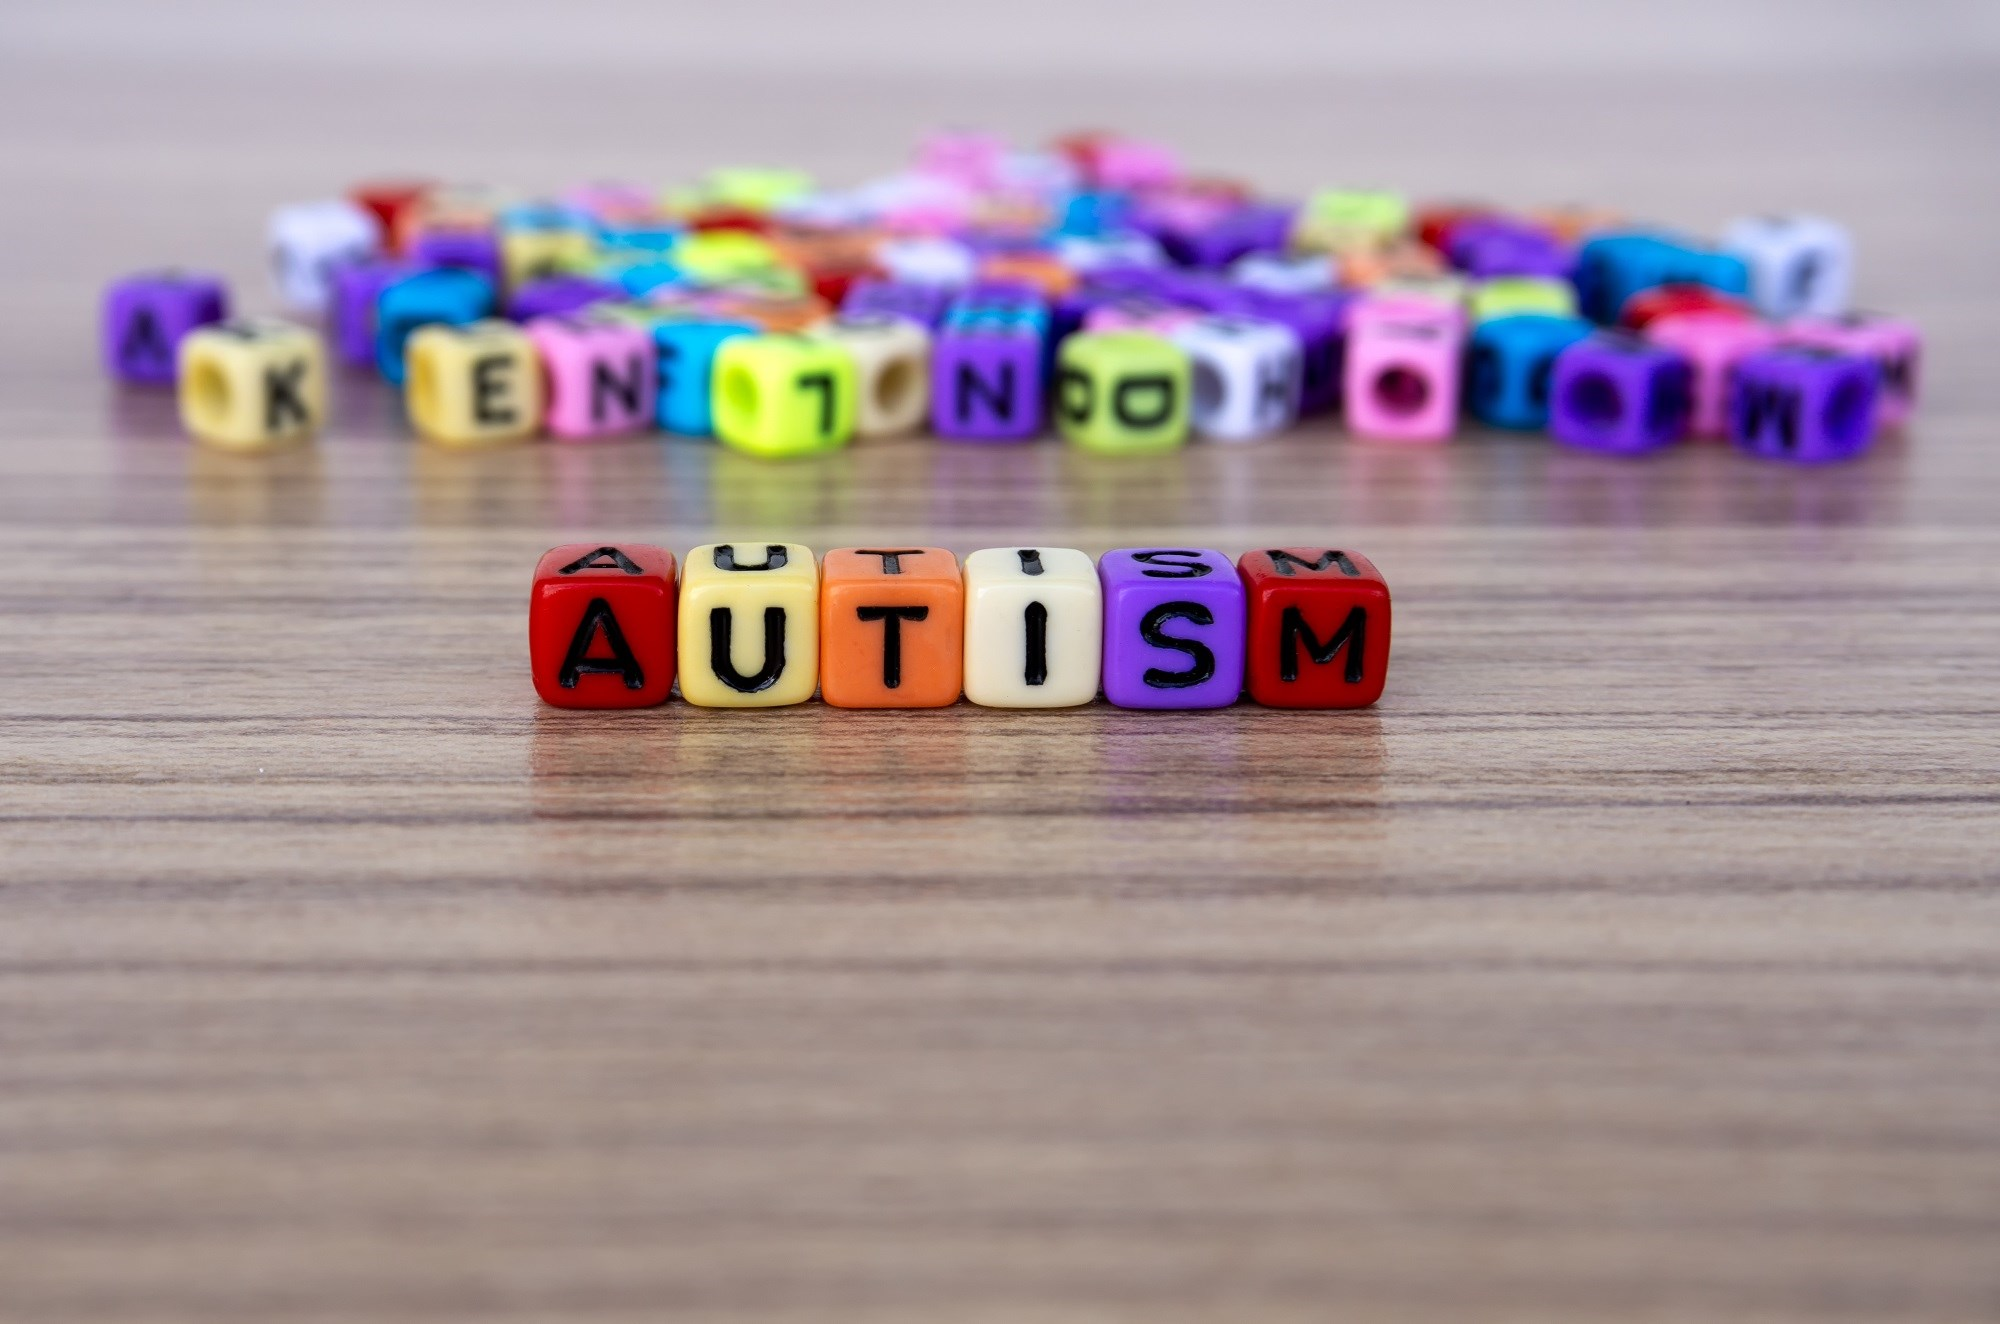 The prevalence of parent-reported autism spectrum disorder is estimated at 2.5% among US children aged 3 to 17 years.